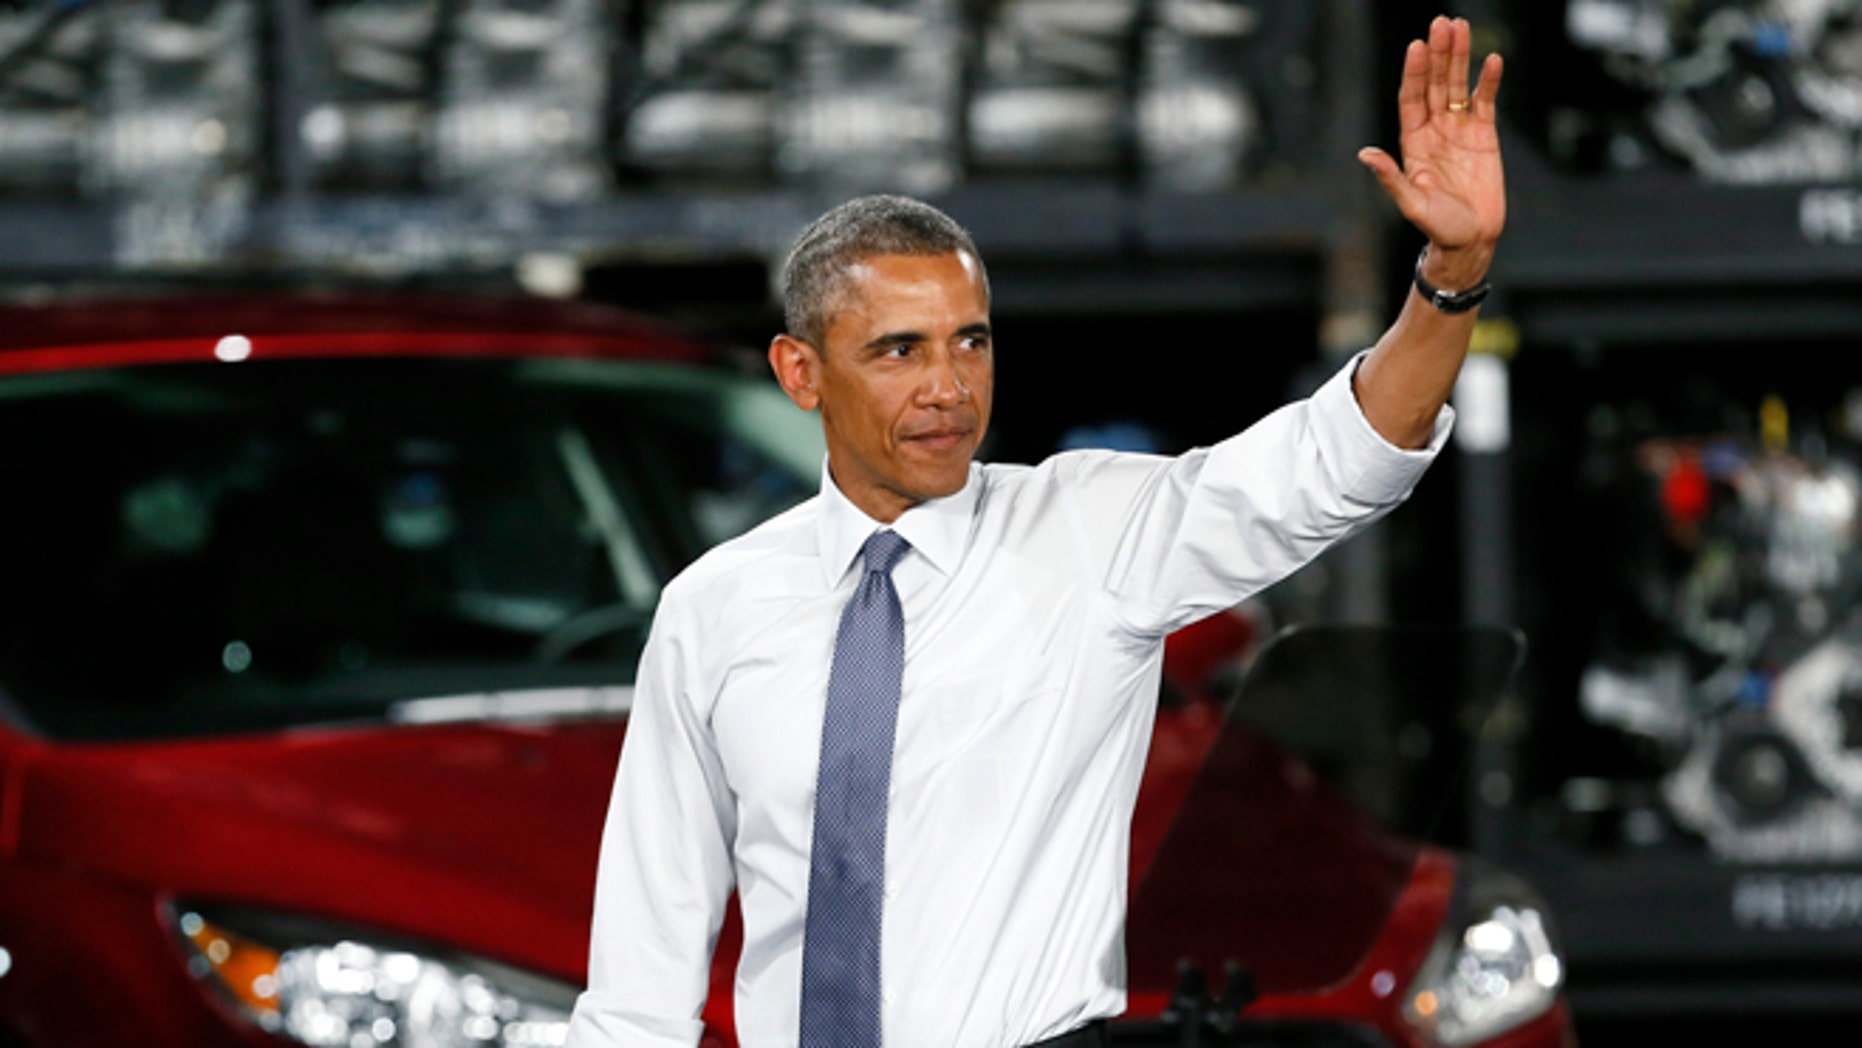 President Barack Obama waves to the audience at the Ford Michigan Assembly Plant in Wayne, Mich., Wednesday, Jan. 7, 2015.